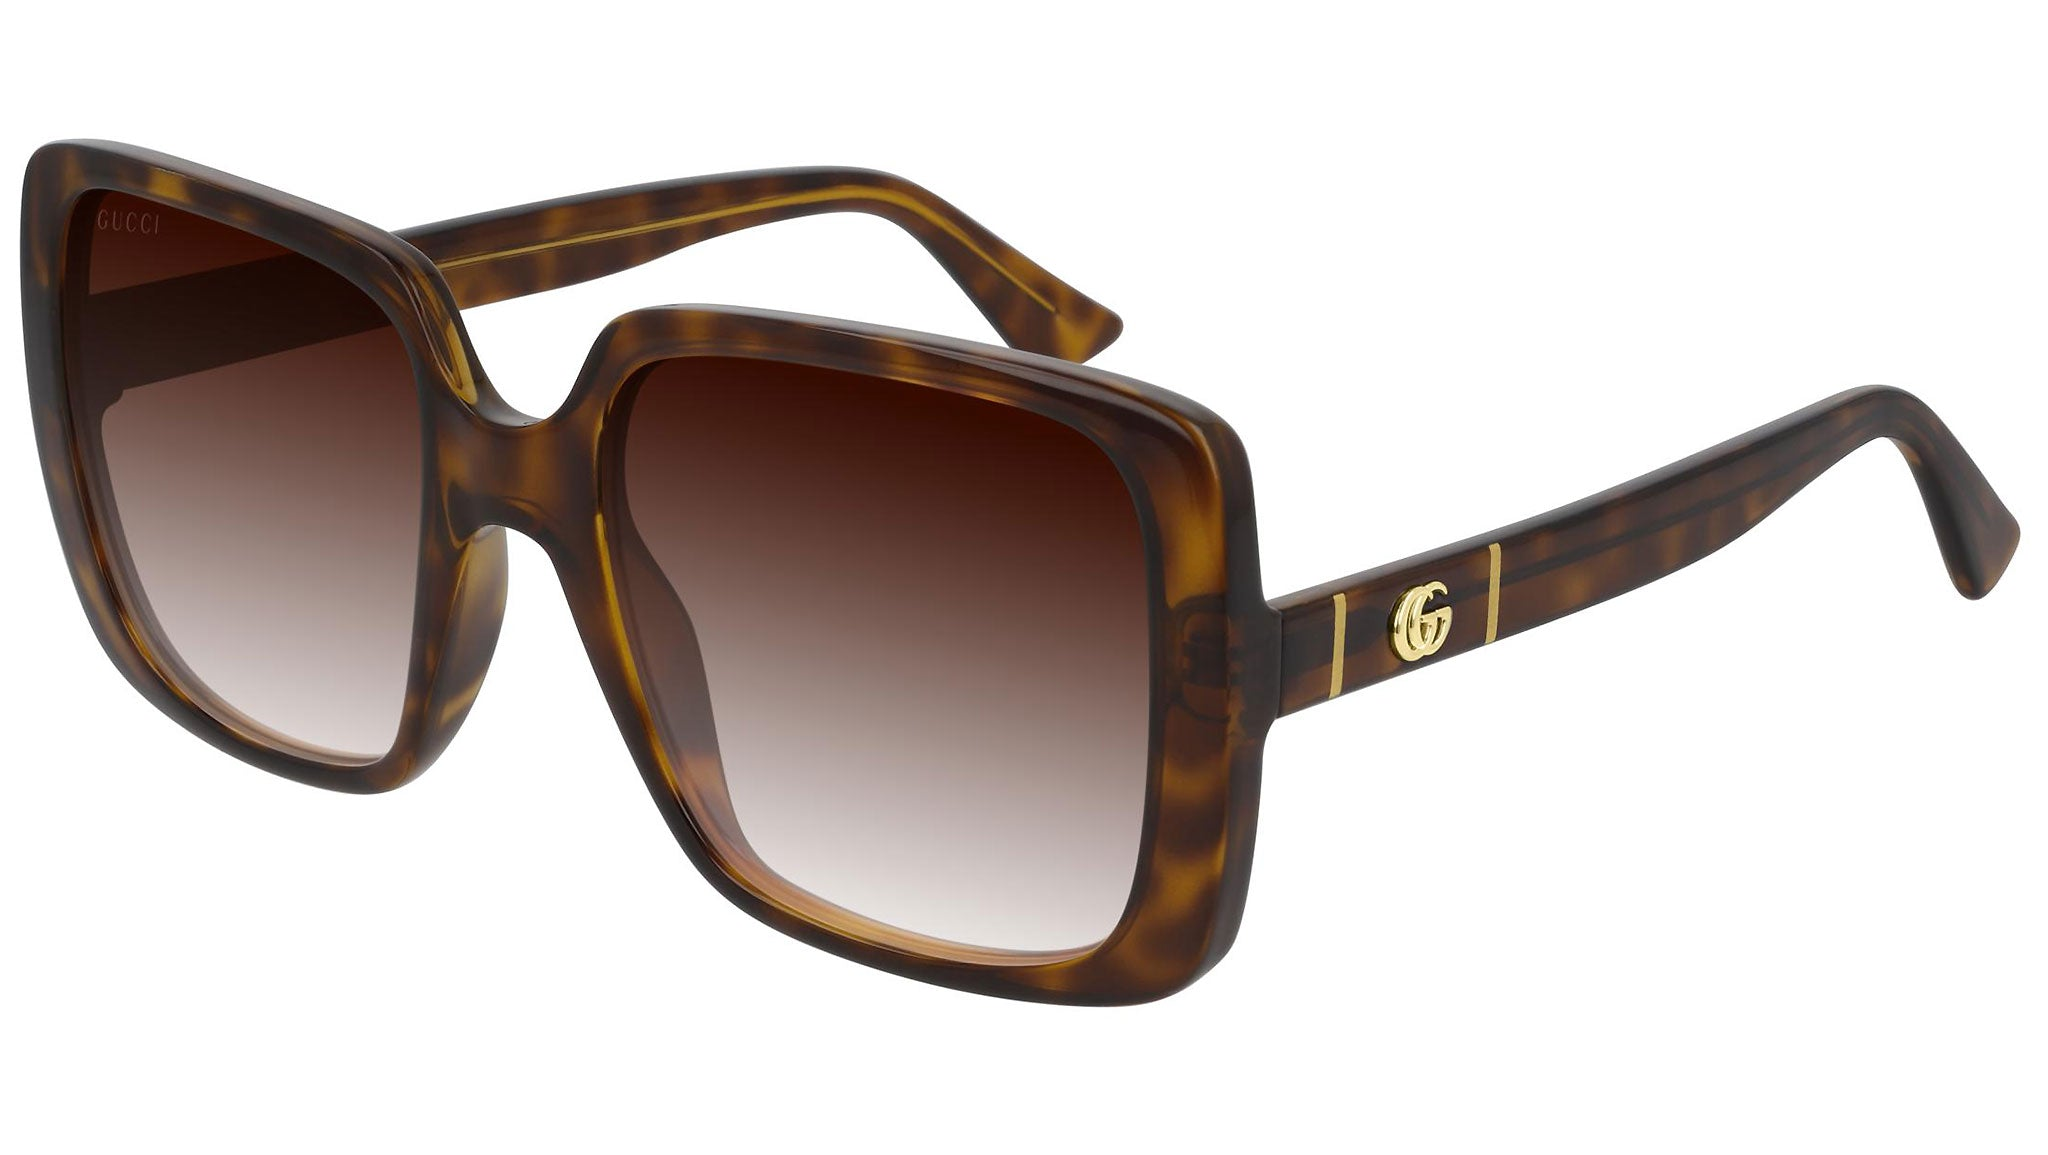 GG0632S shiny havana and brown